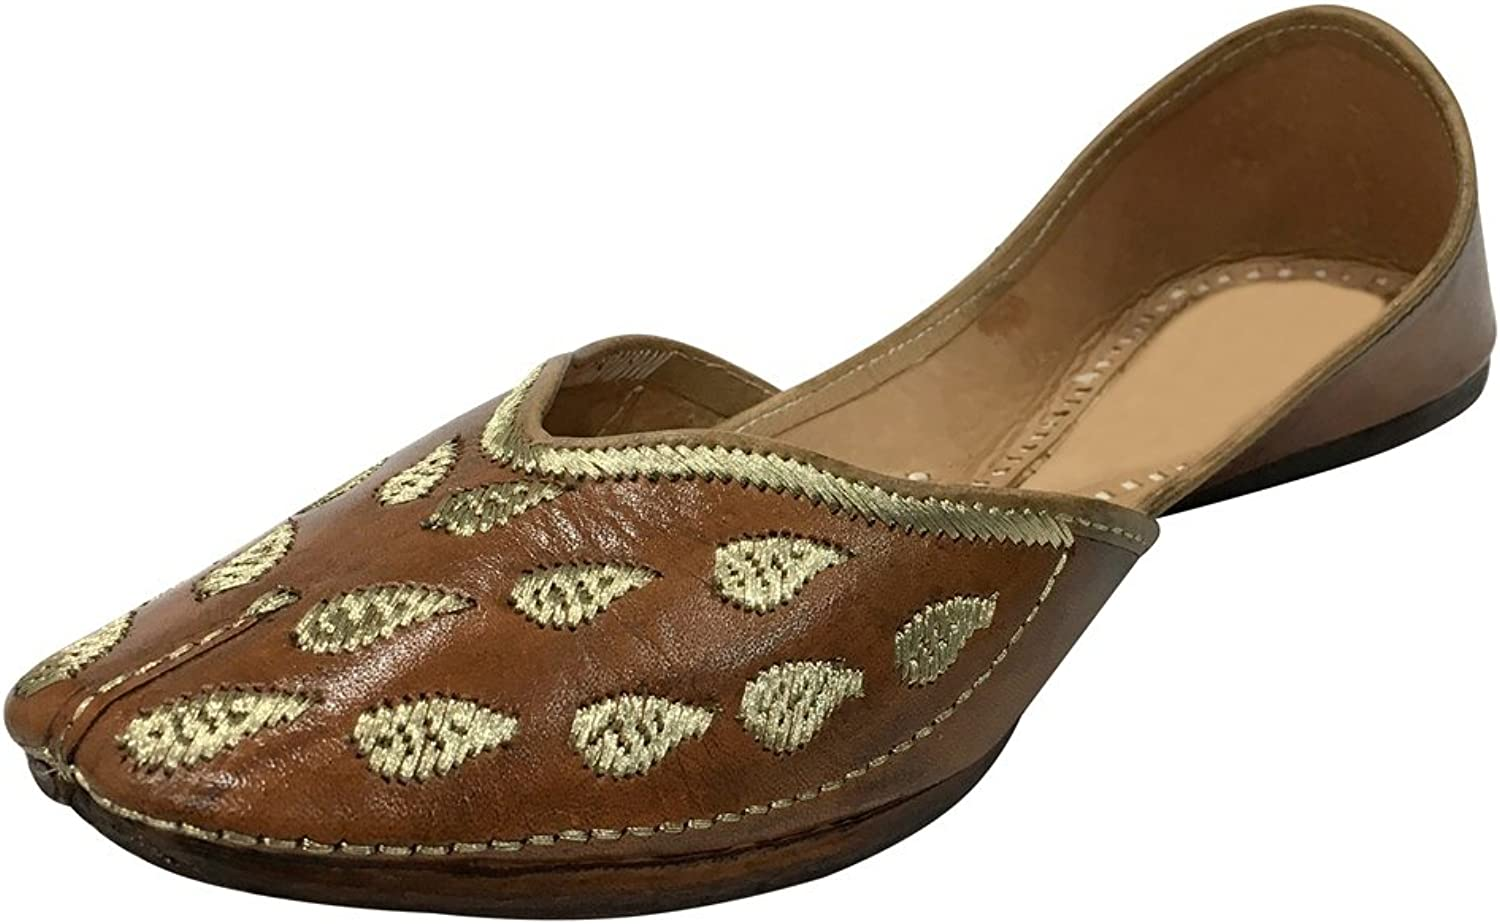 Step n Style Indian Khussa Beaded shoes Flats Leather Handmade Jutti Ballet shoes